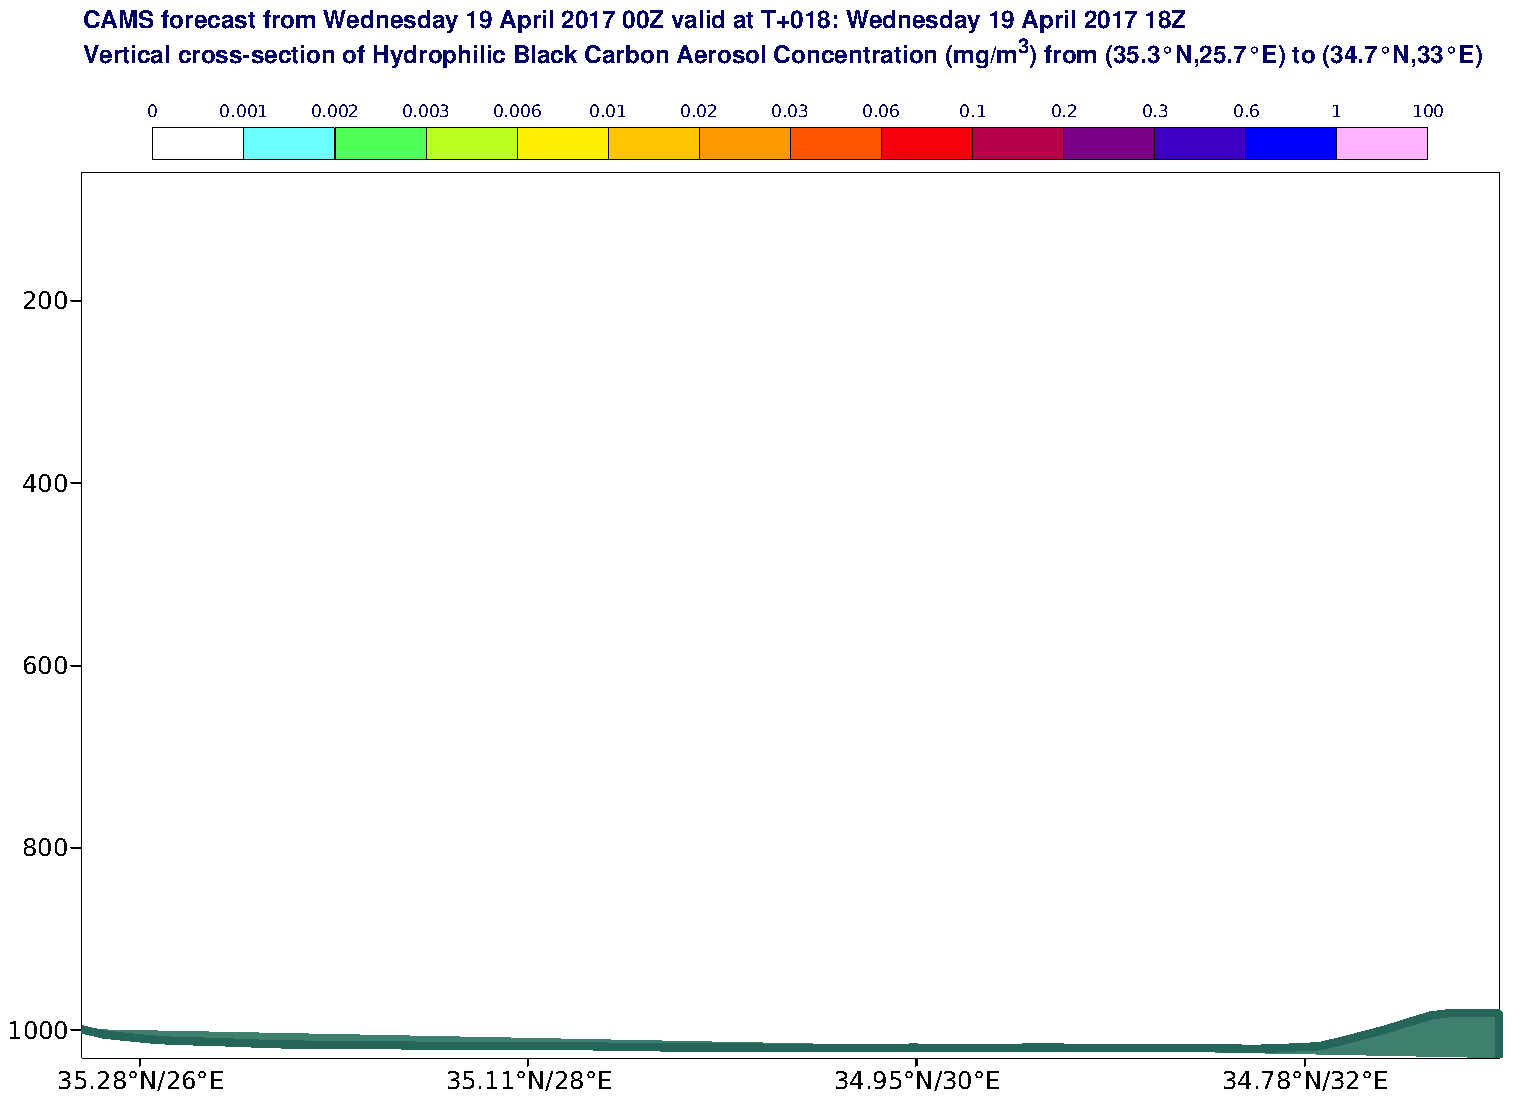 Vertical cross-section of Hydrophilic Black Carbon Aerosol Concentration (mg/m3) valid at T18 - 2017-04-19 18:00